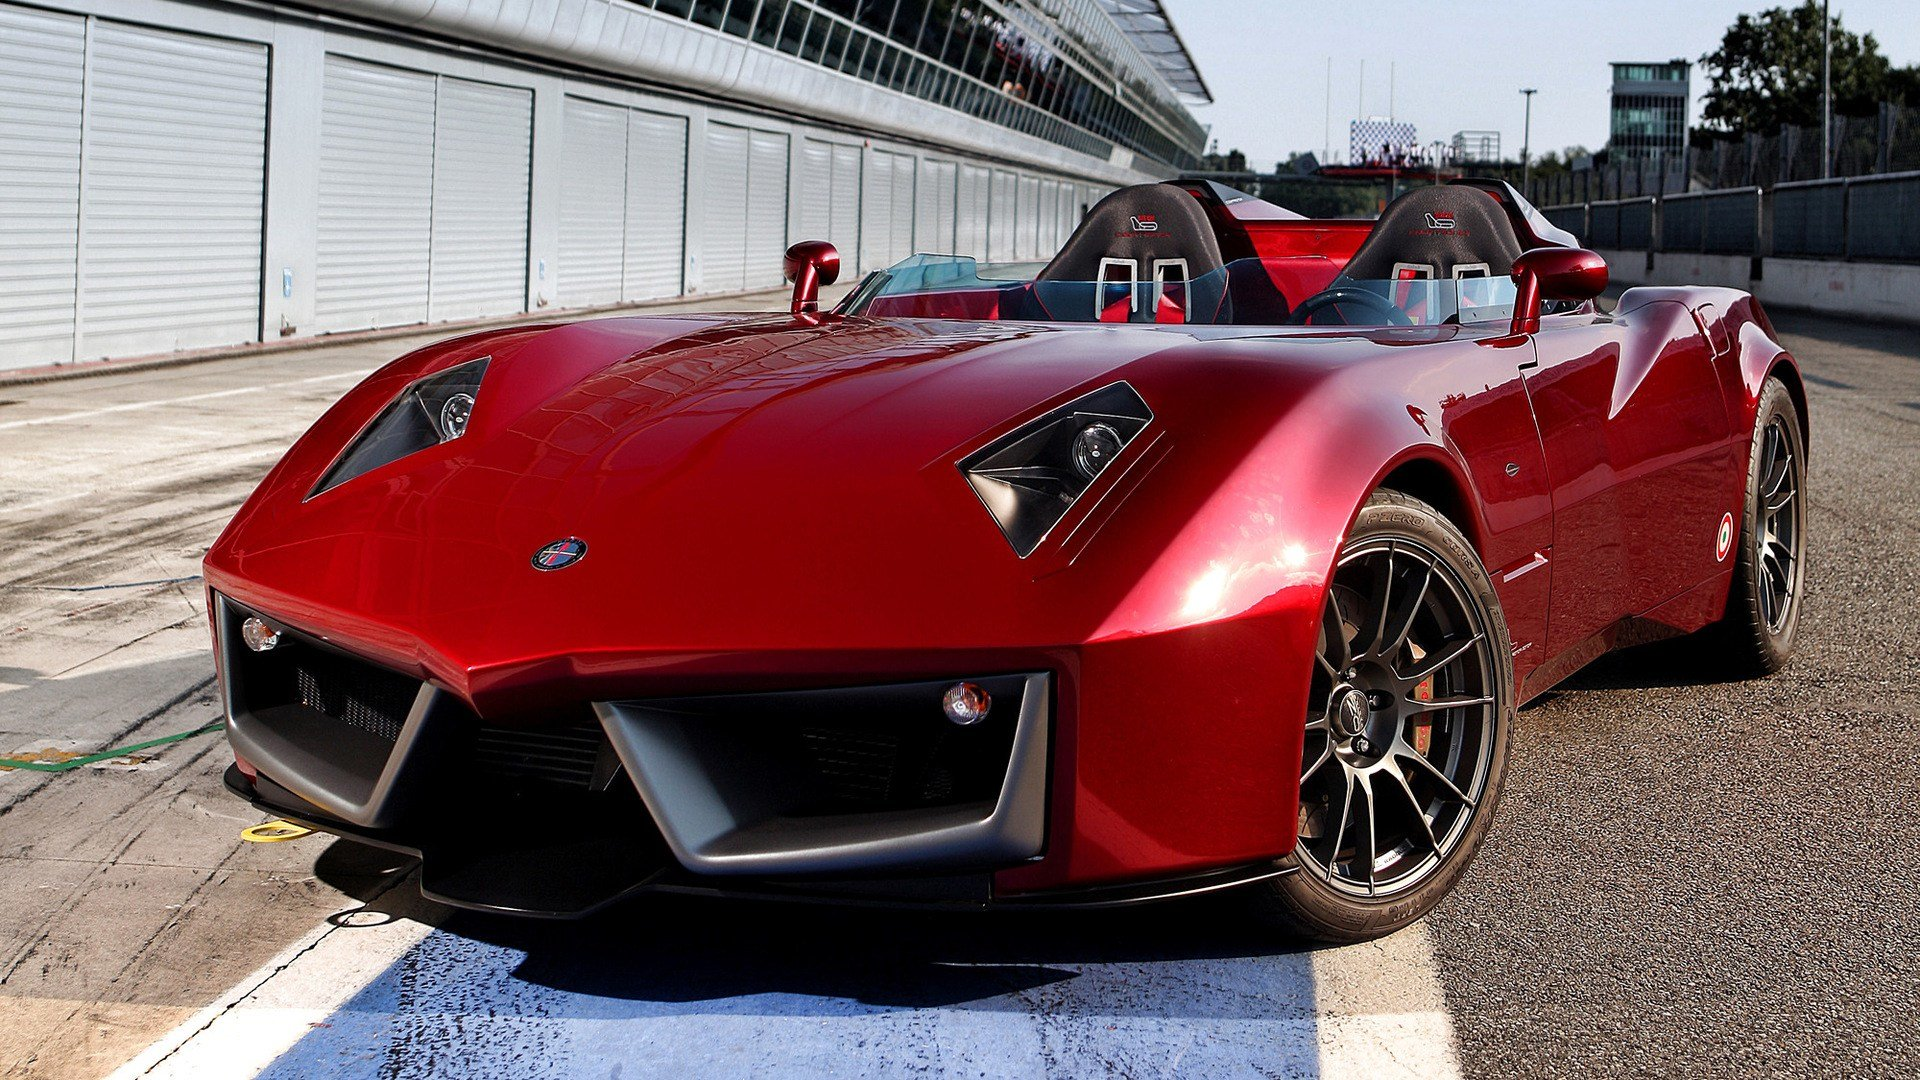 Latest Spada Codatronca Monza 2011 Wallpapers And Hd Images Free Download